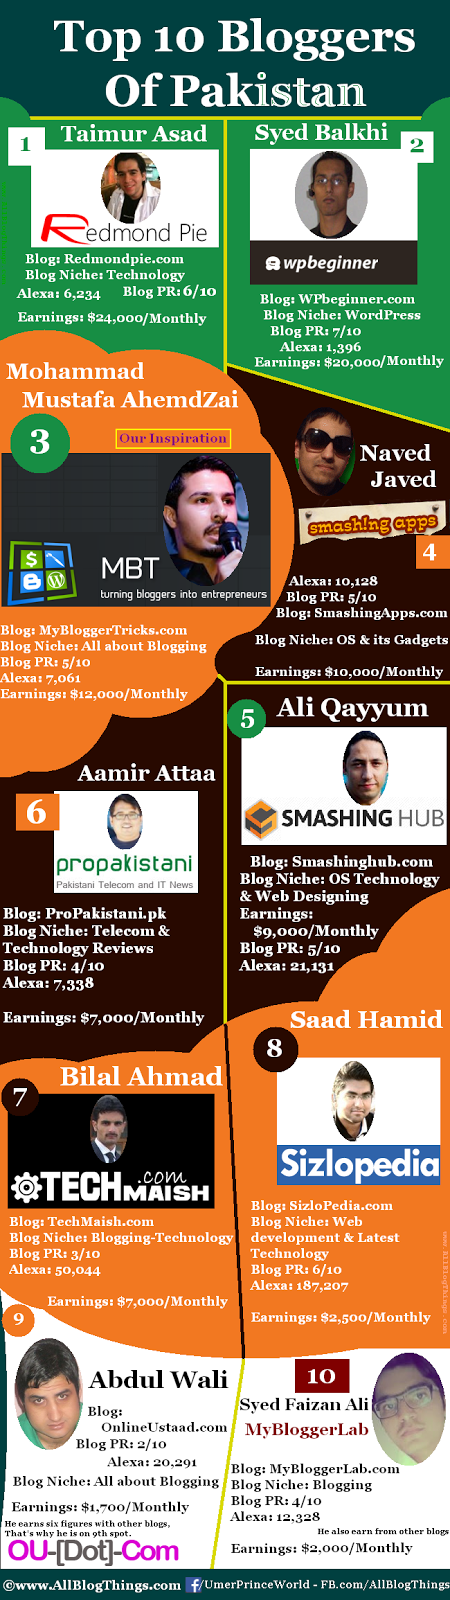 Top 10 Bloggers Of Pakistan 2016 - Infographic